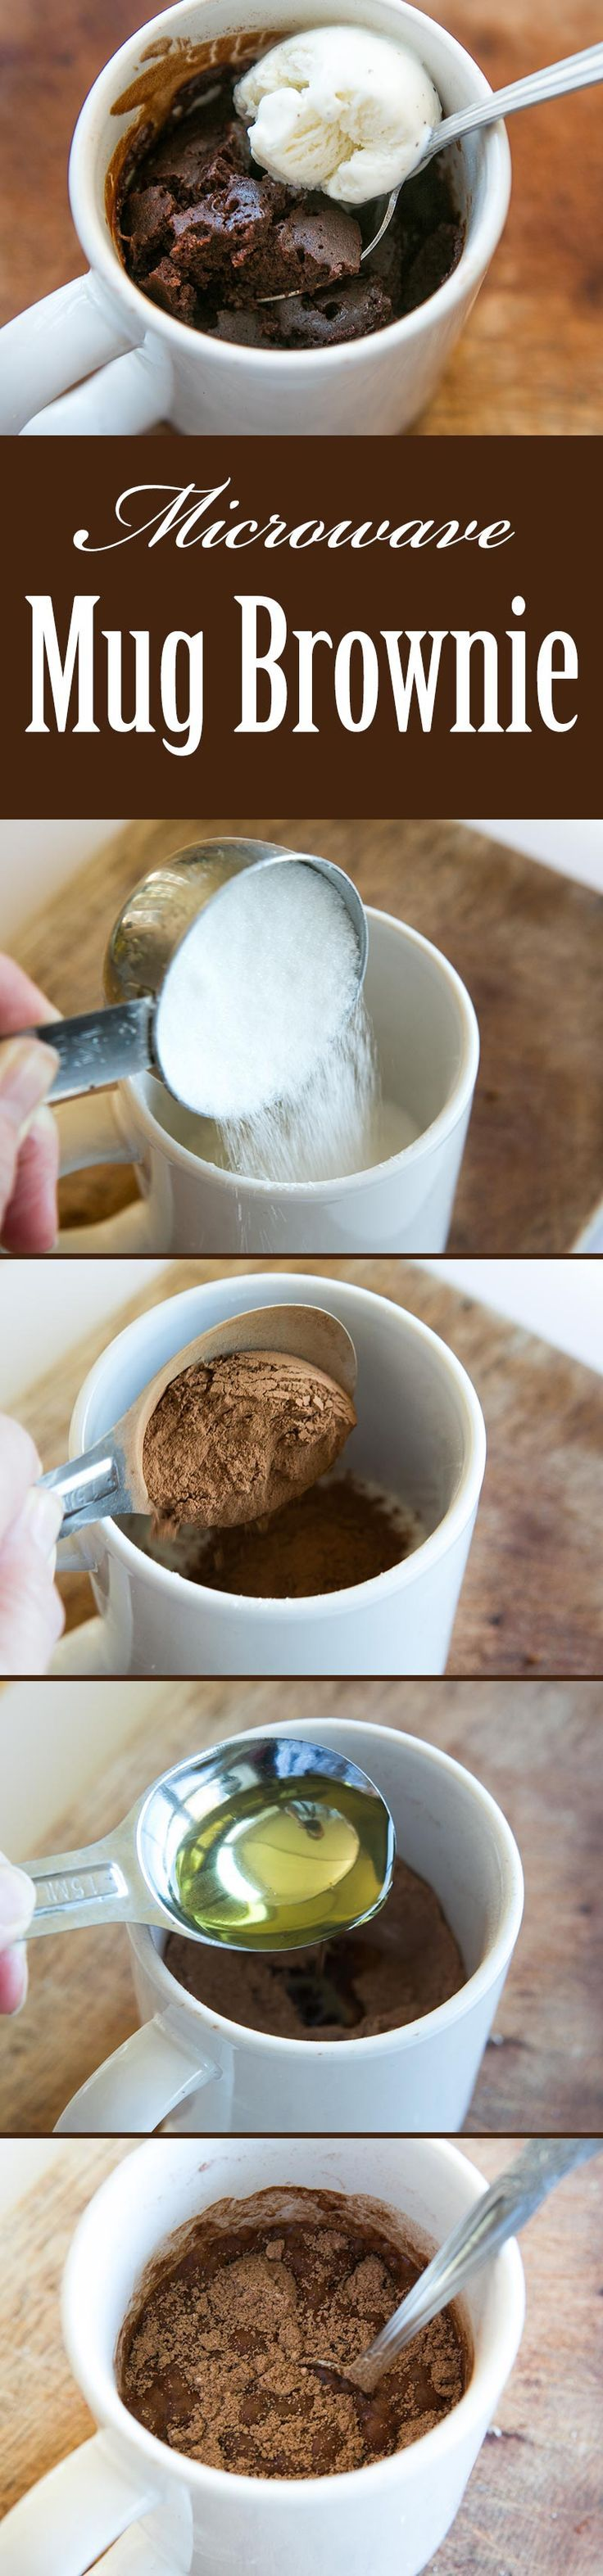 Easiest brownie ever! Single serving brownie microwaved in a mug. Takes only 5 minutes to make! On SimplyRecipes.com